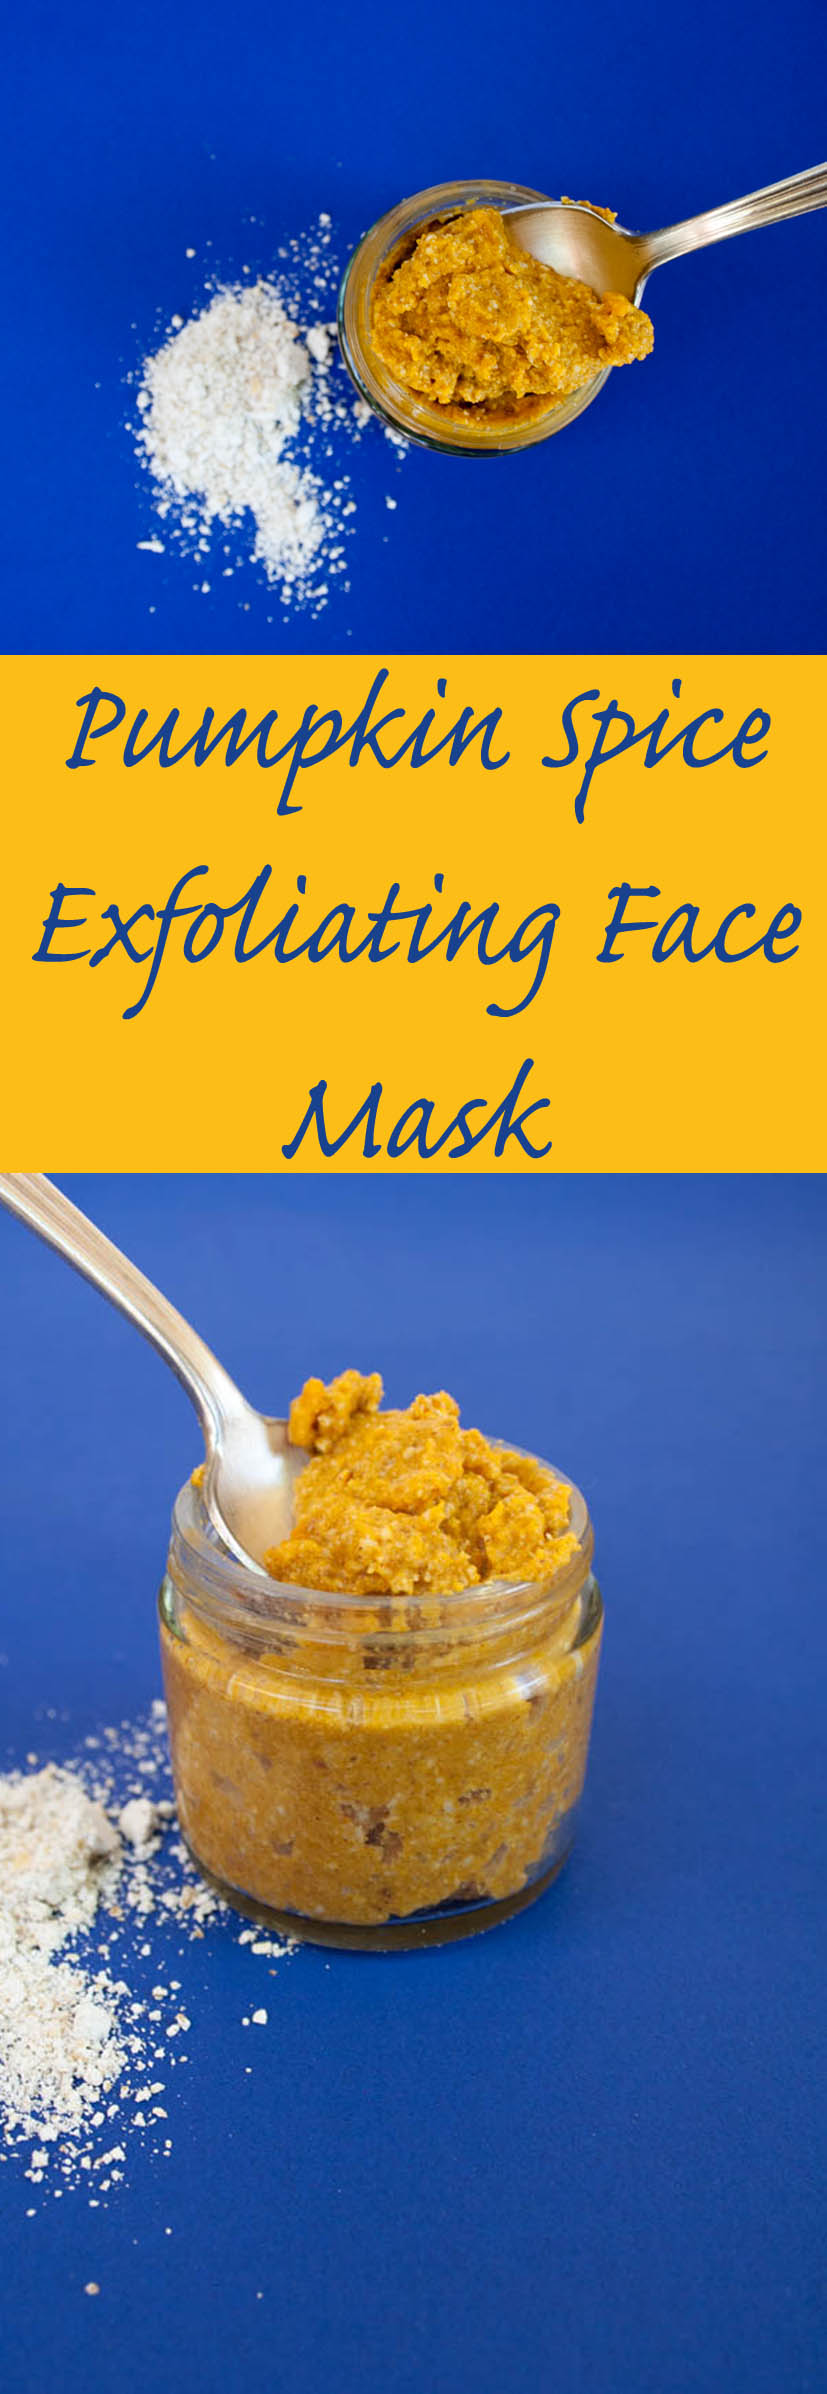 Pumpkin Spice Exfoliating Face Mask collage photo with text.